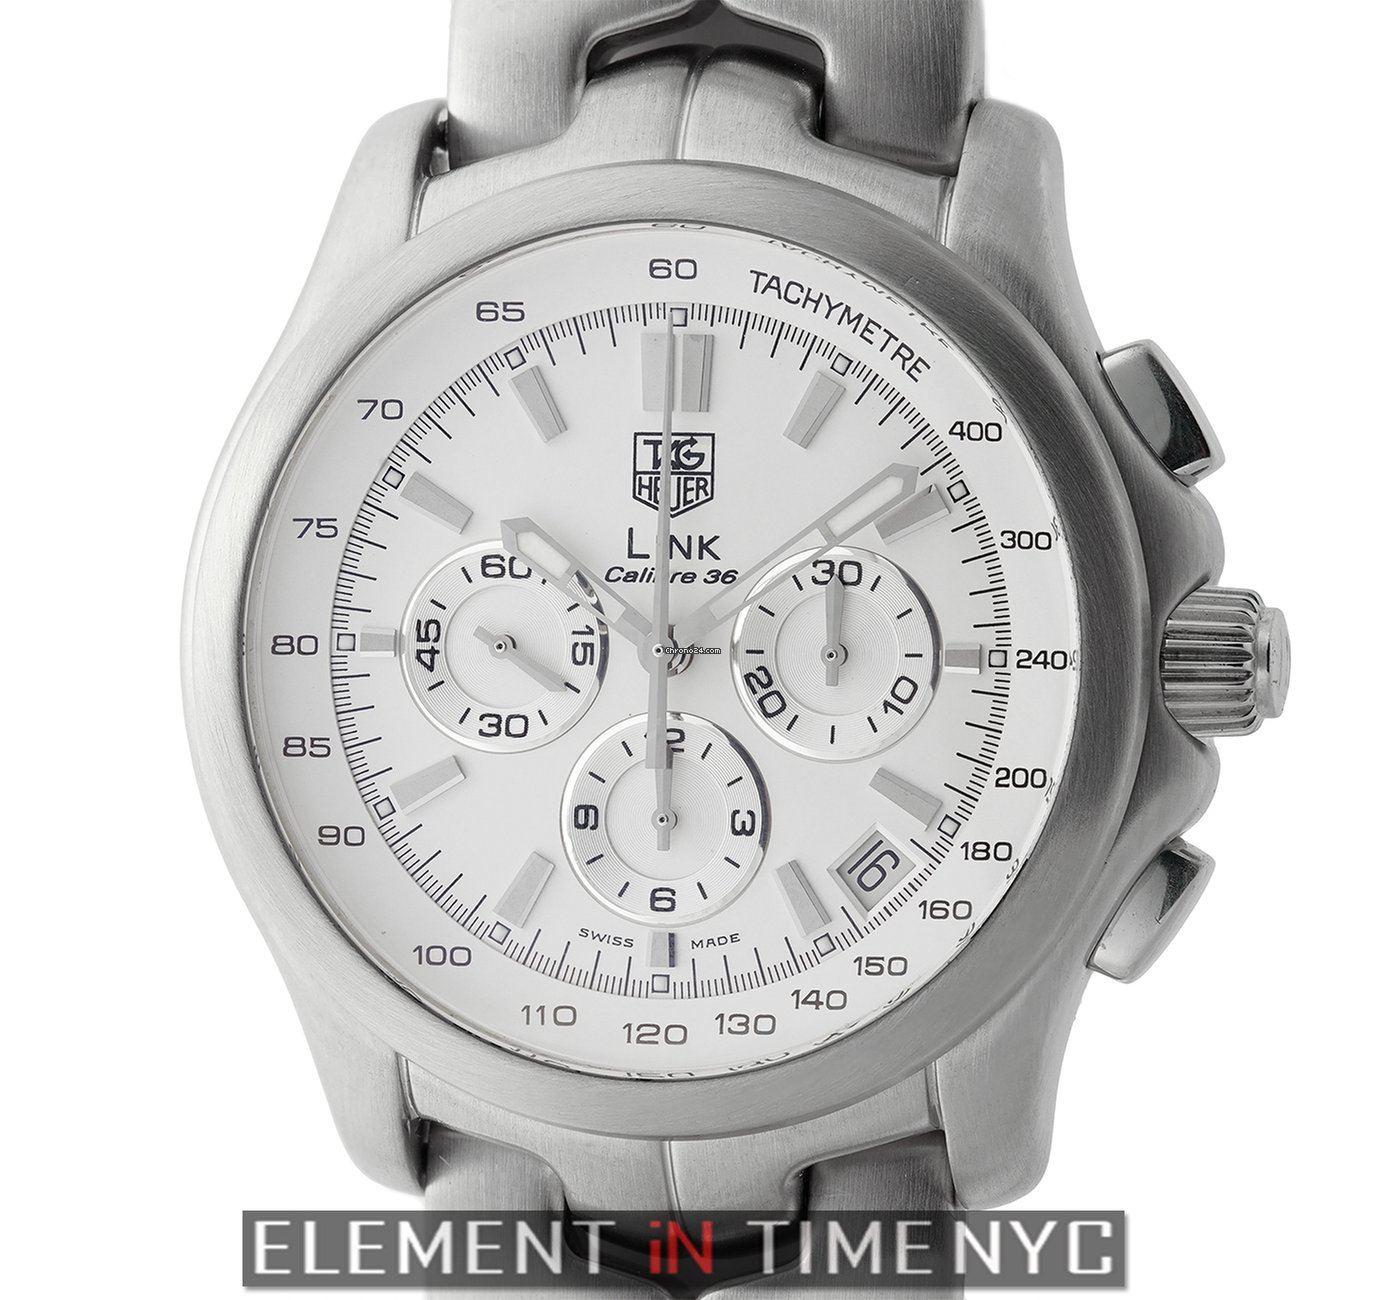 44e2355bcc9 TAG Heuer Link Caliber 36 El Primero Chronograph Stainless Steel 43mm  Silver Dial